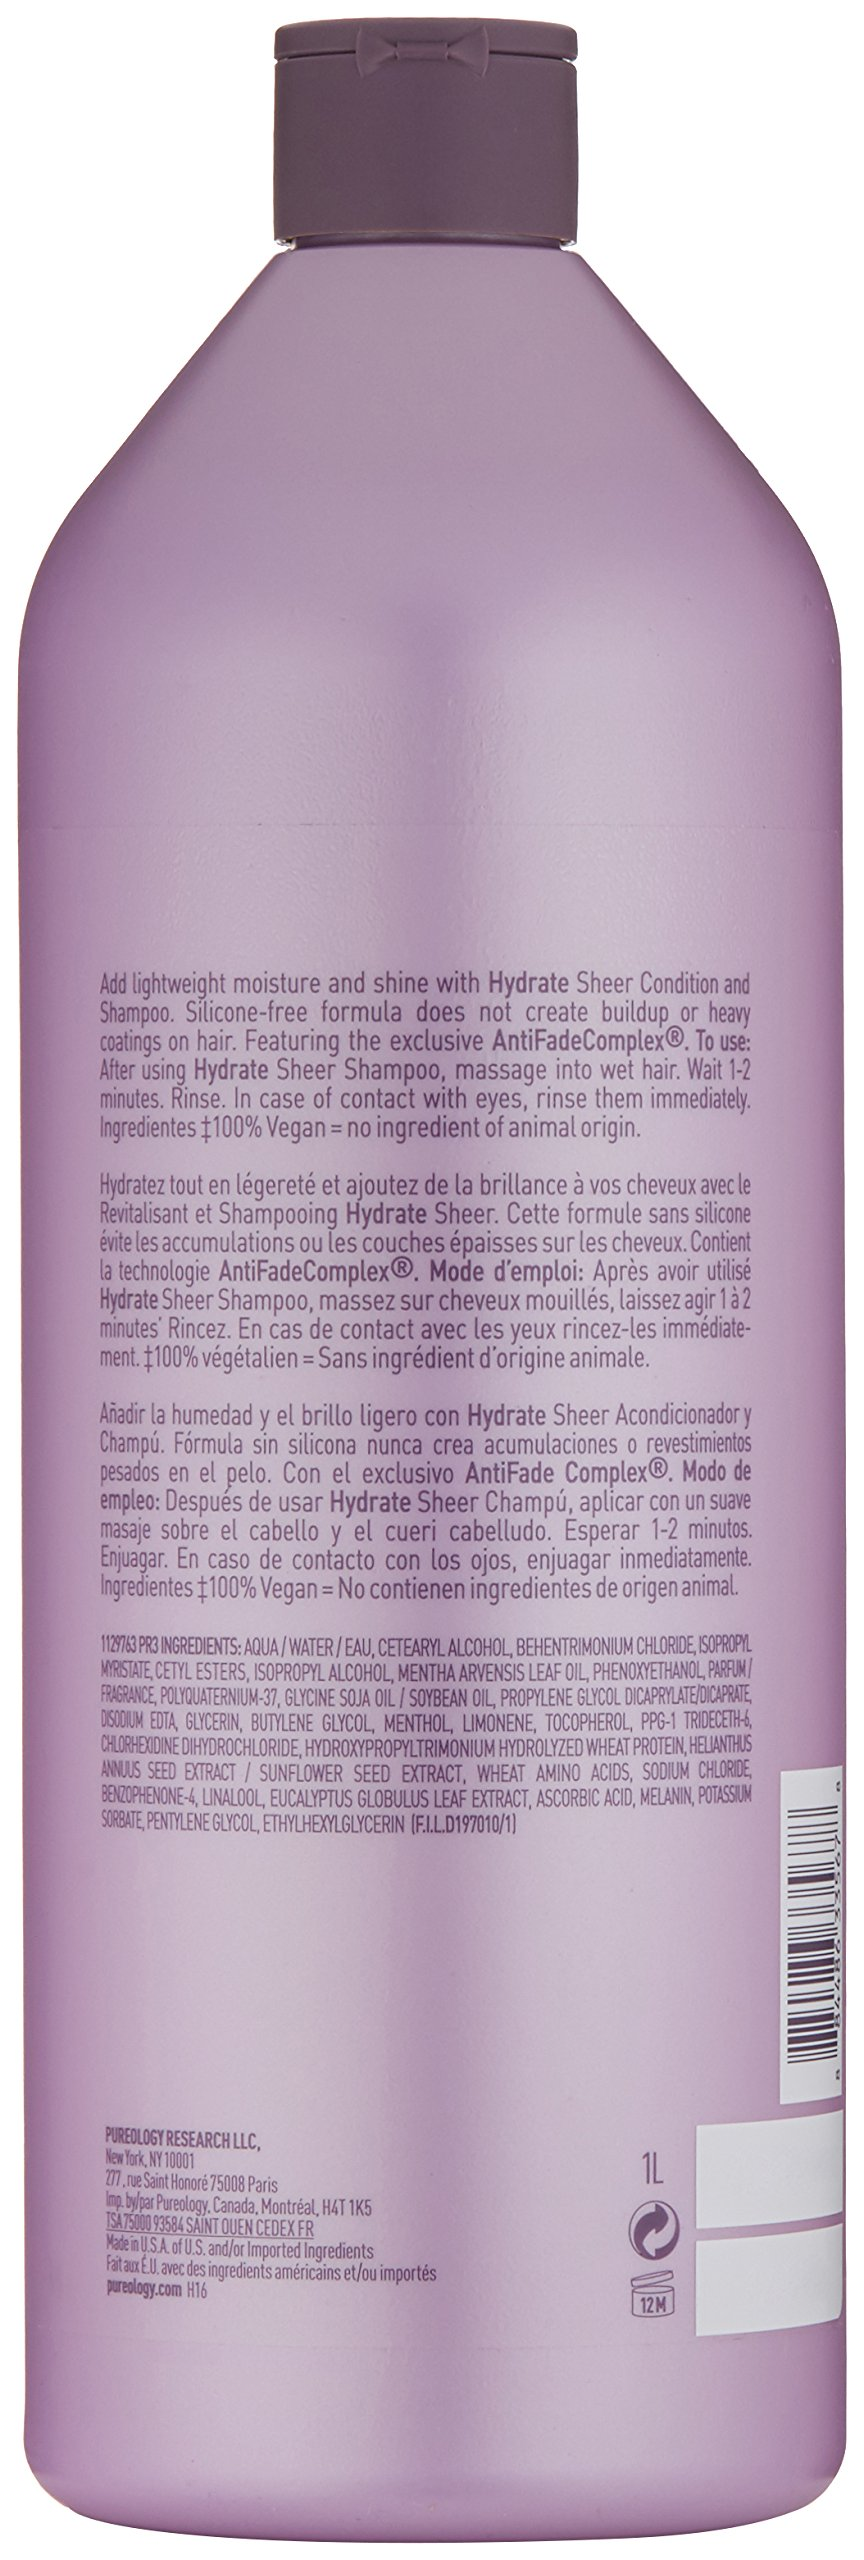 Pureology Hydrate Sheer Conditioner, 33.8 Fl Oz by Pureology (Image #2)